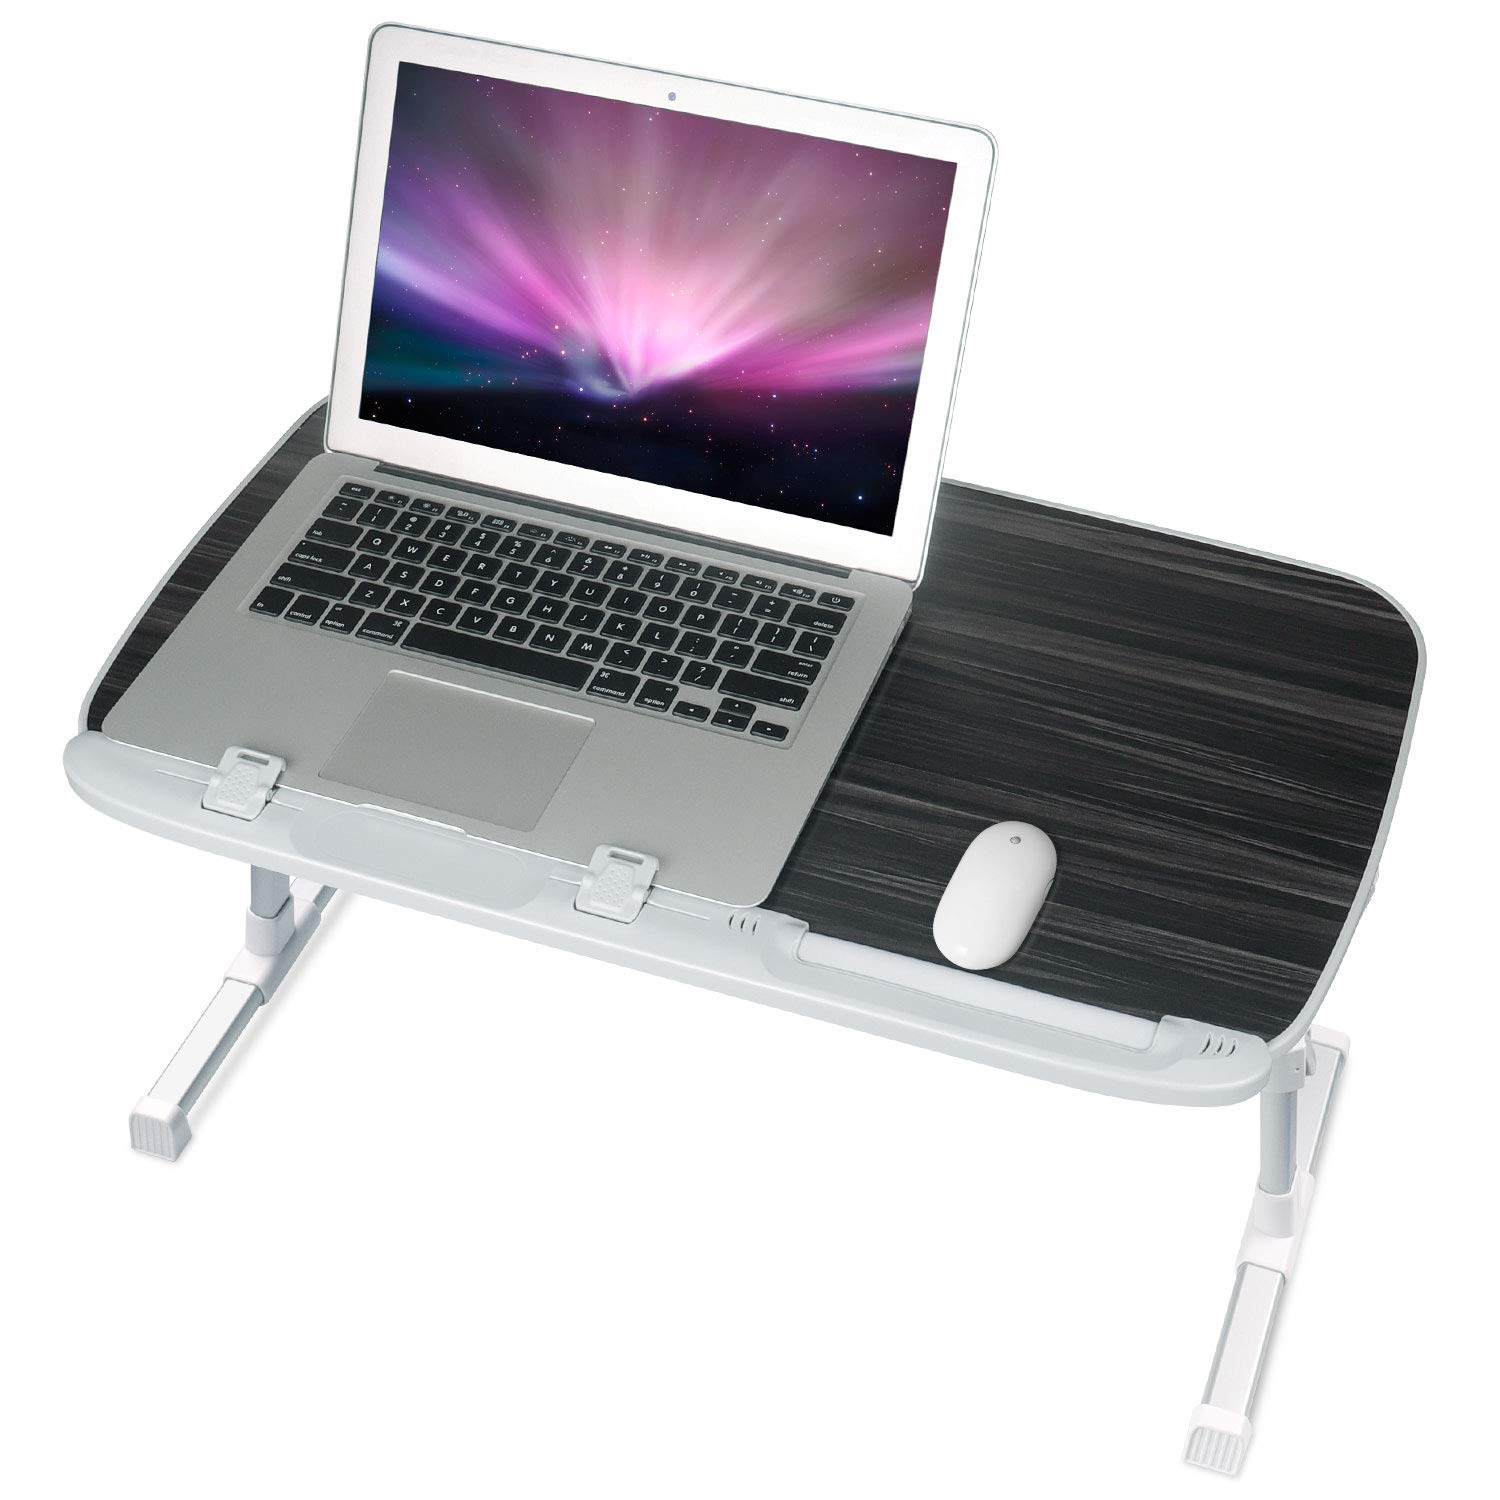 Laptop Desk for Bed, NEARPOW Larger Size Bed Table Laptop Bed Tray, Height and Angle Adjustable Computer Standing Desk Lap Desk with Foldable Legs for Reading and Writing in Bed, Sofa, Couch, Floor